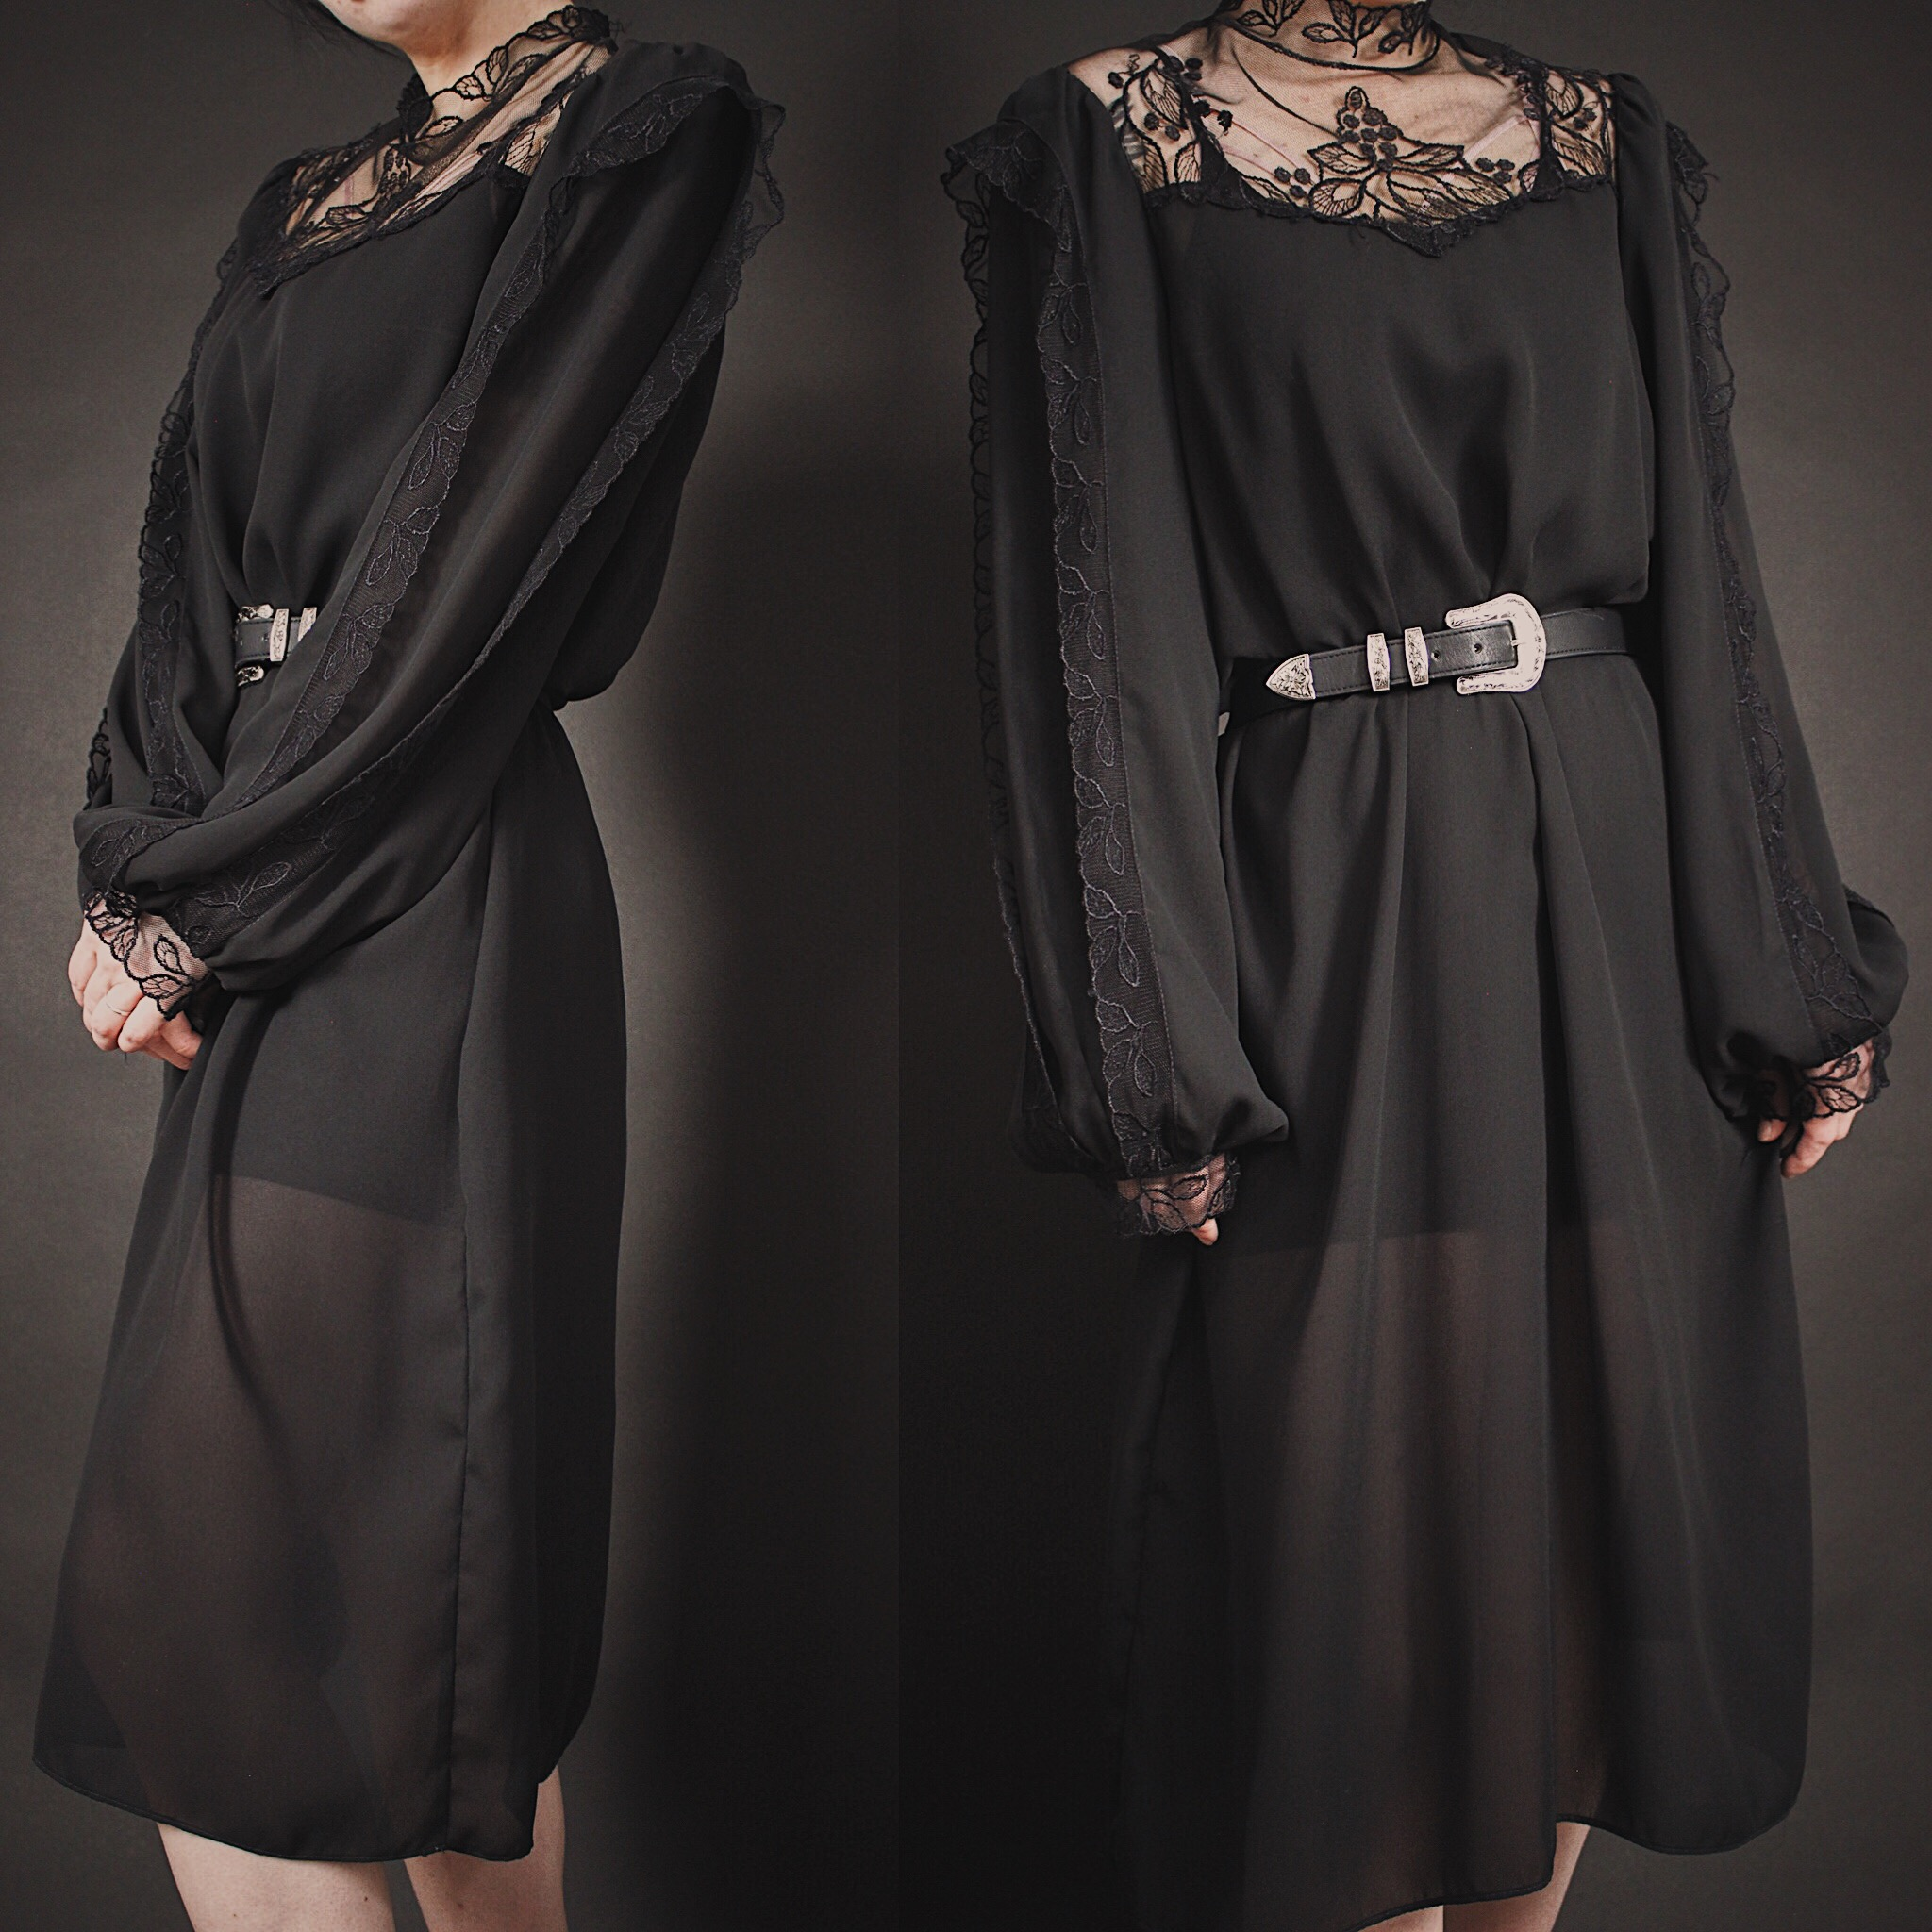 RESERVED FOR MAXX - Vintage 80s Black Lace Victorian Inspired Dress ... 56ce4b976